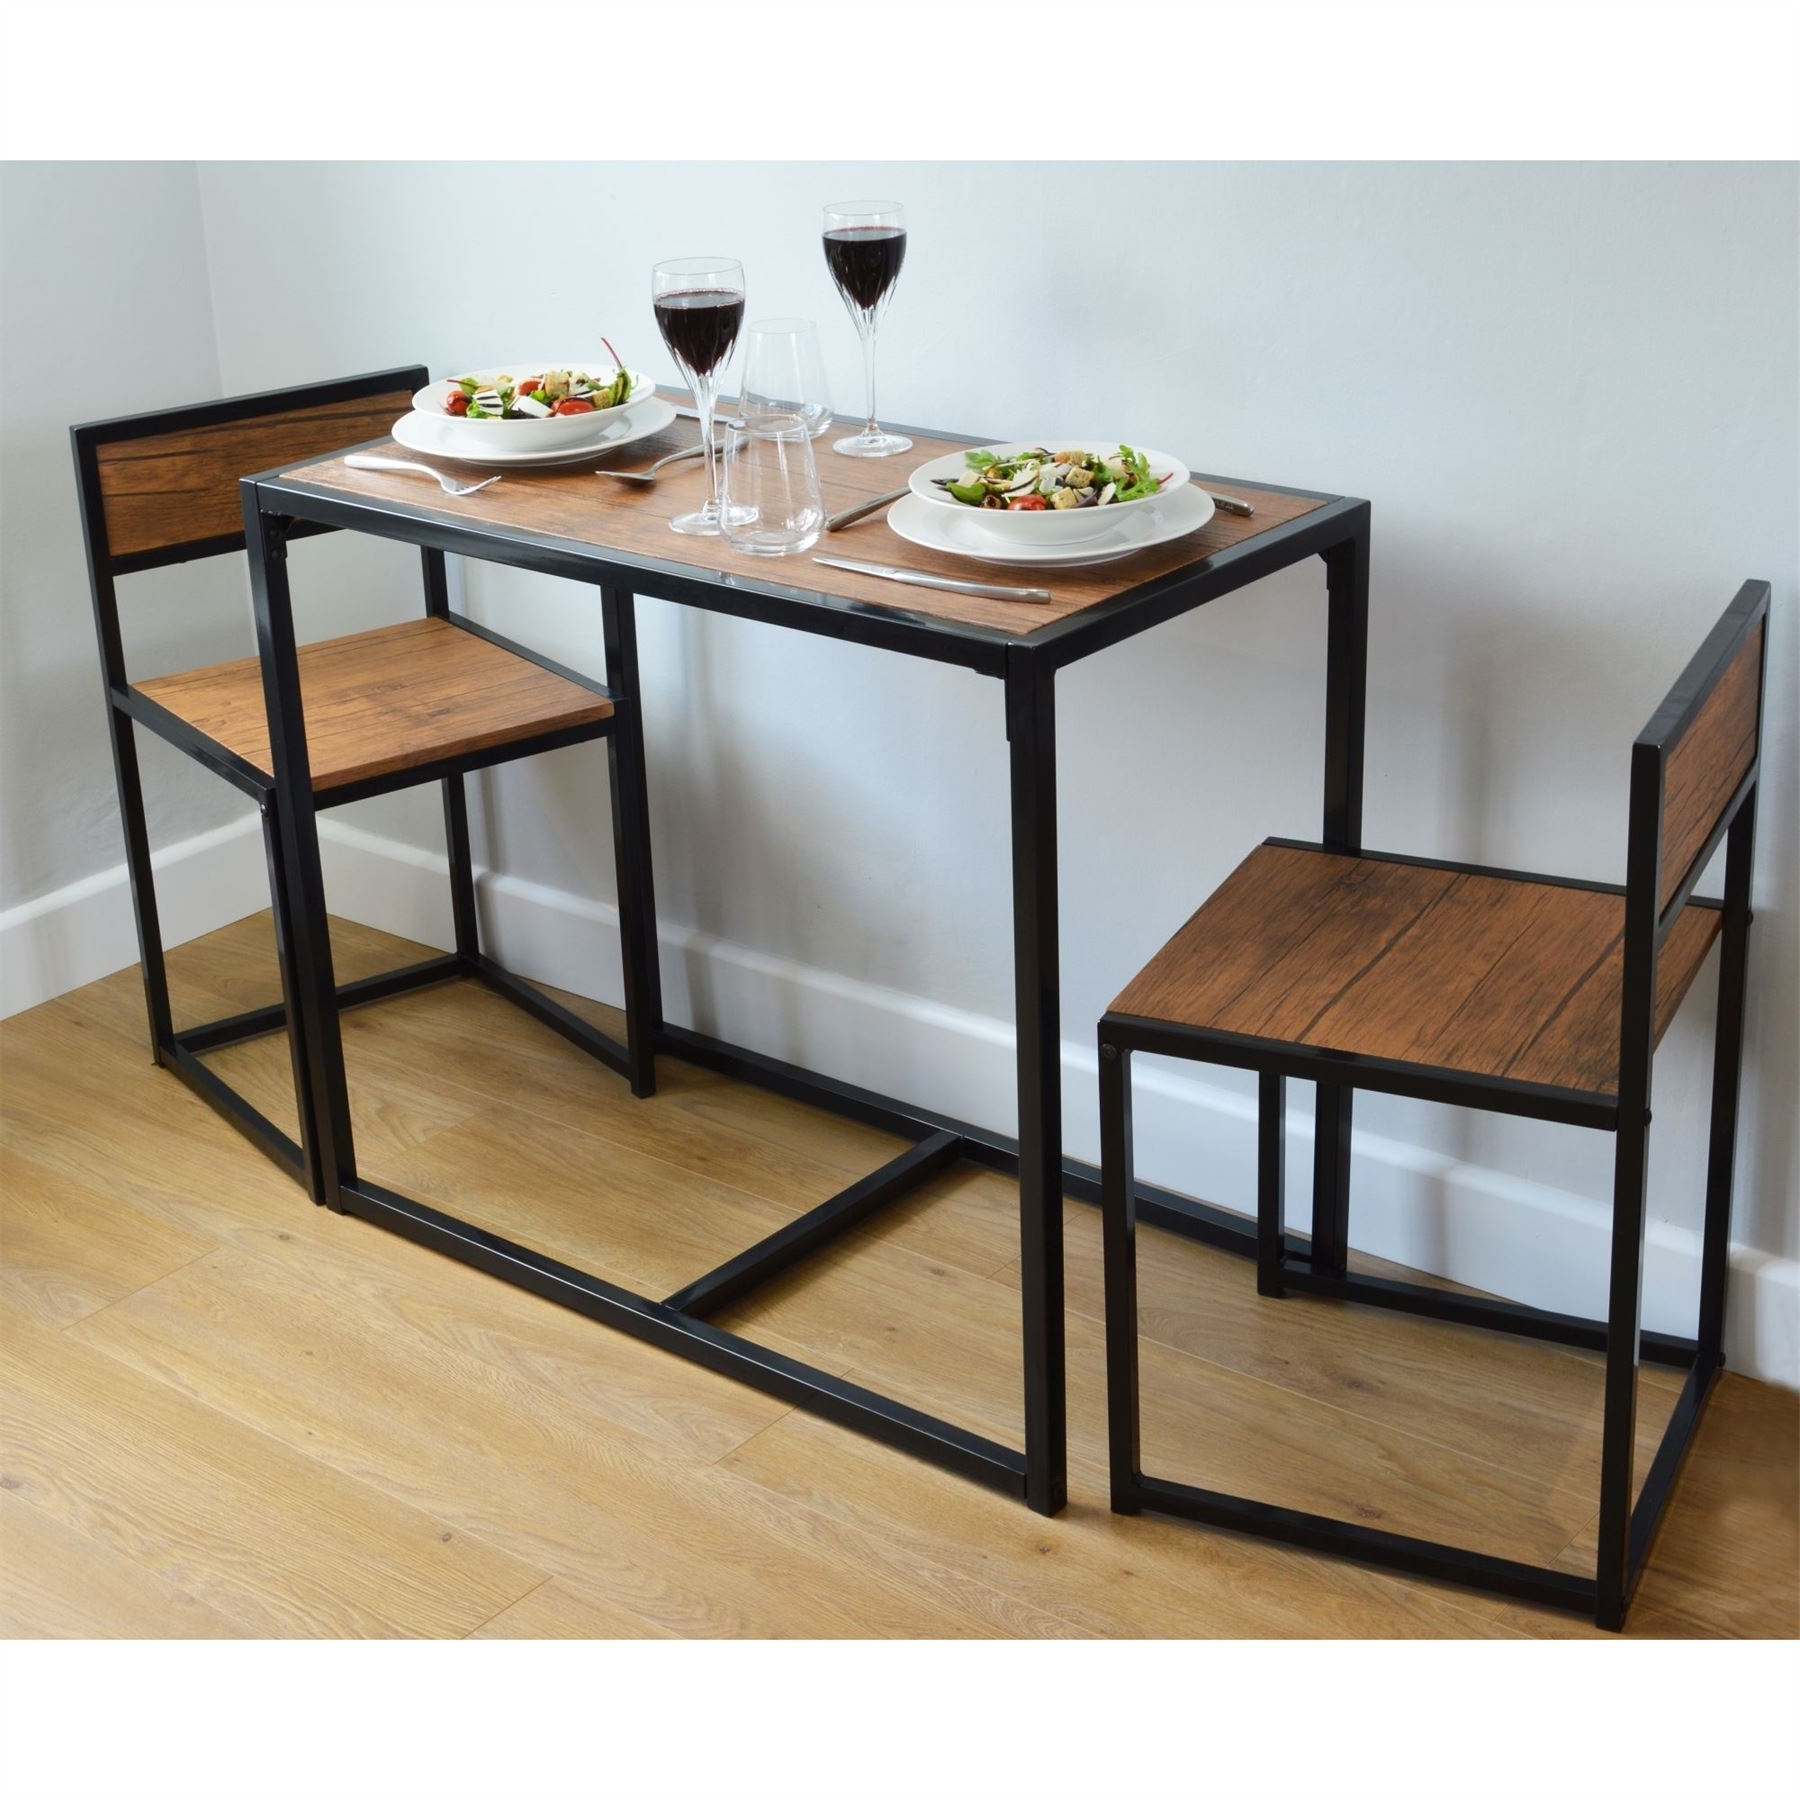 Trendy Compact Dining Sets In 2 Person Space Saving, Compact, Kitchen Dining Table & Chairs (View 23 of 25)